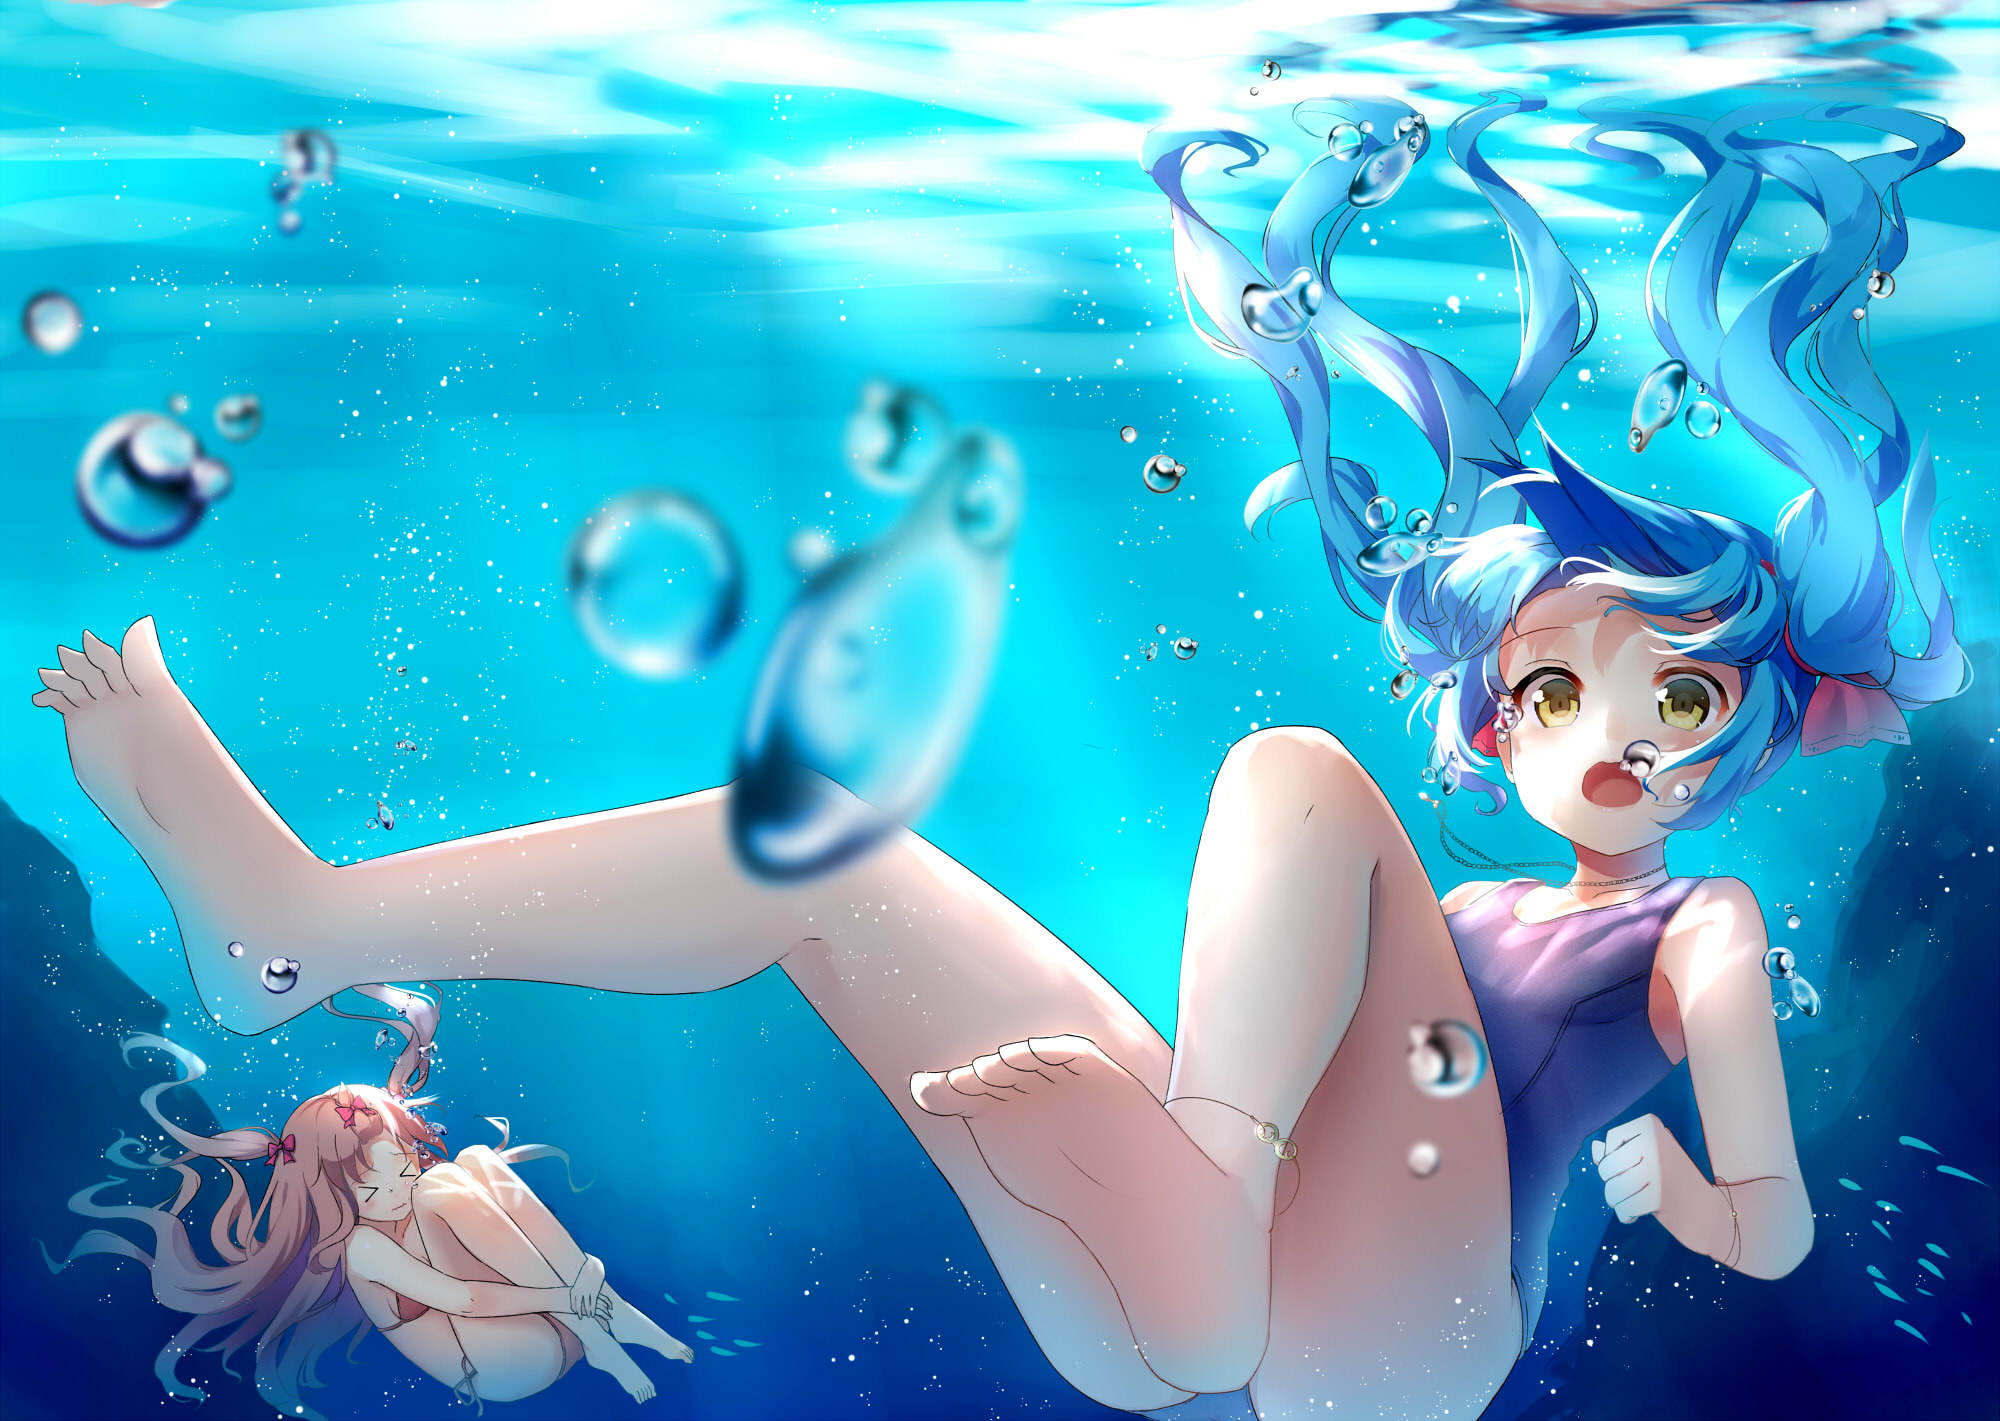 Wallpaper Girl Pink Iphone Anime Vocaloid Anime Girl Swimsuit Underwater Bubble